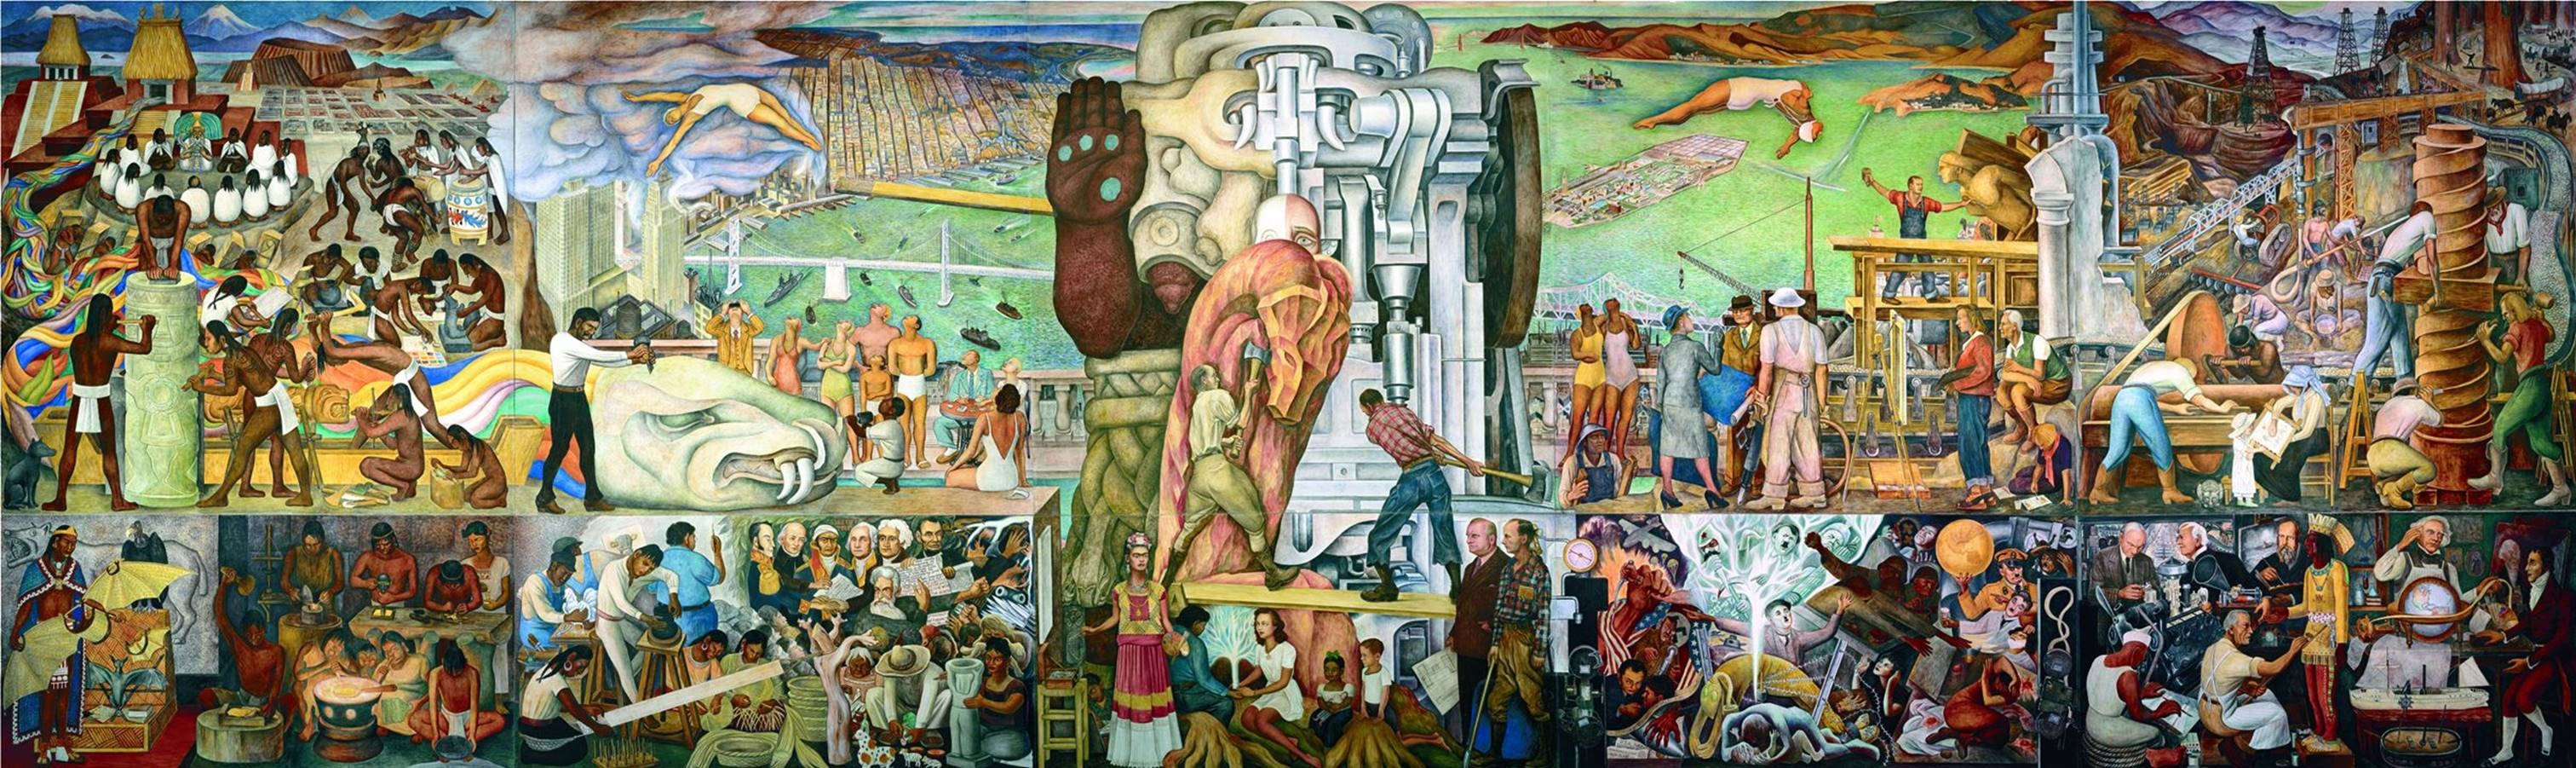 "Diego Rivera, Unión de la Expresión Artistica del Norte y Sur de este Continente"" (The Marriage of the Artistic Expression of the North and of the South on this Continent), 1940, City College of San Francisco"